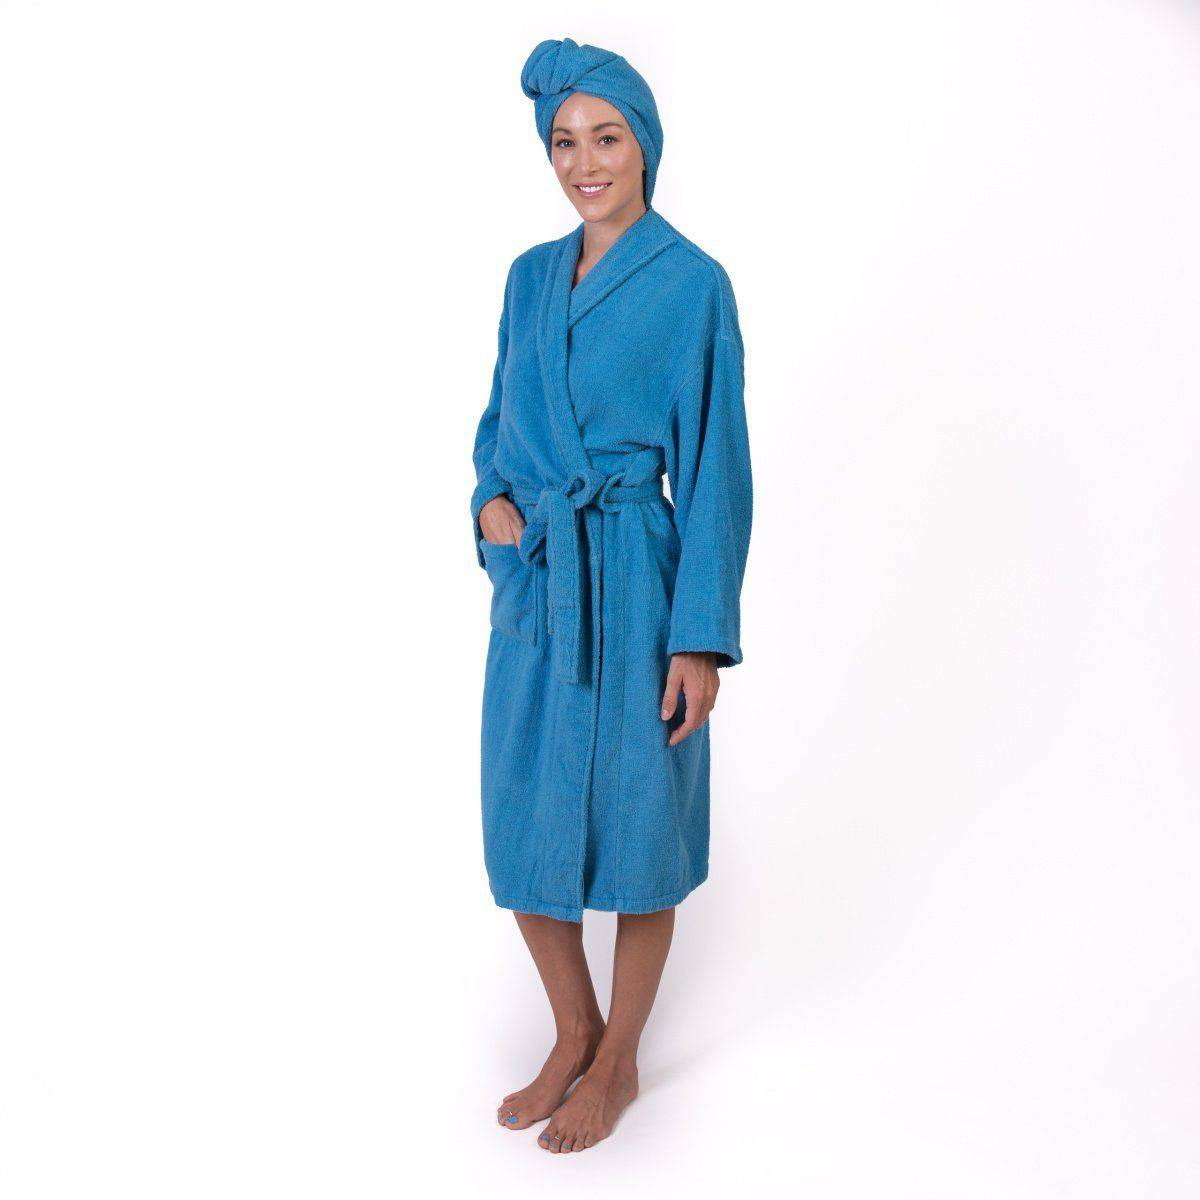 Azure Dione Bath robe with attached turban, Krown Robes